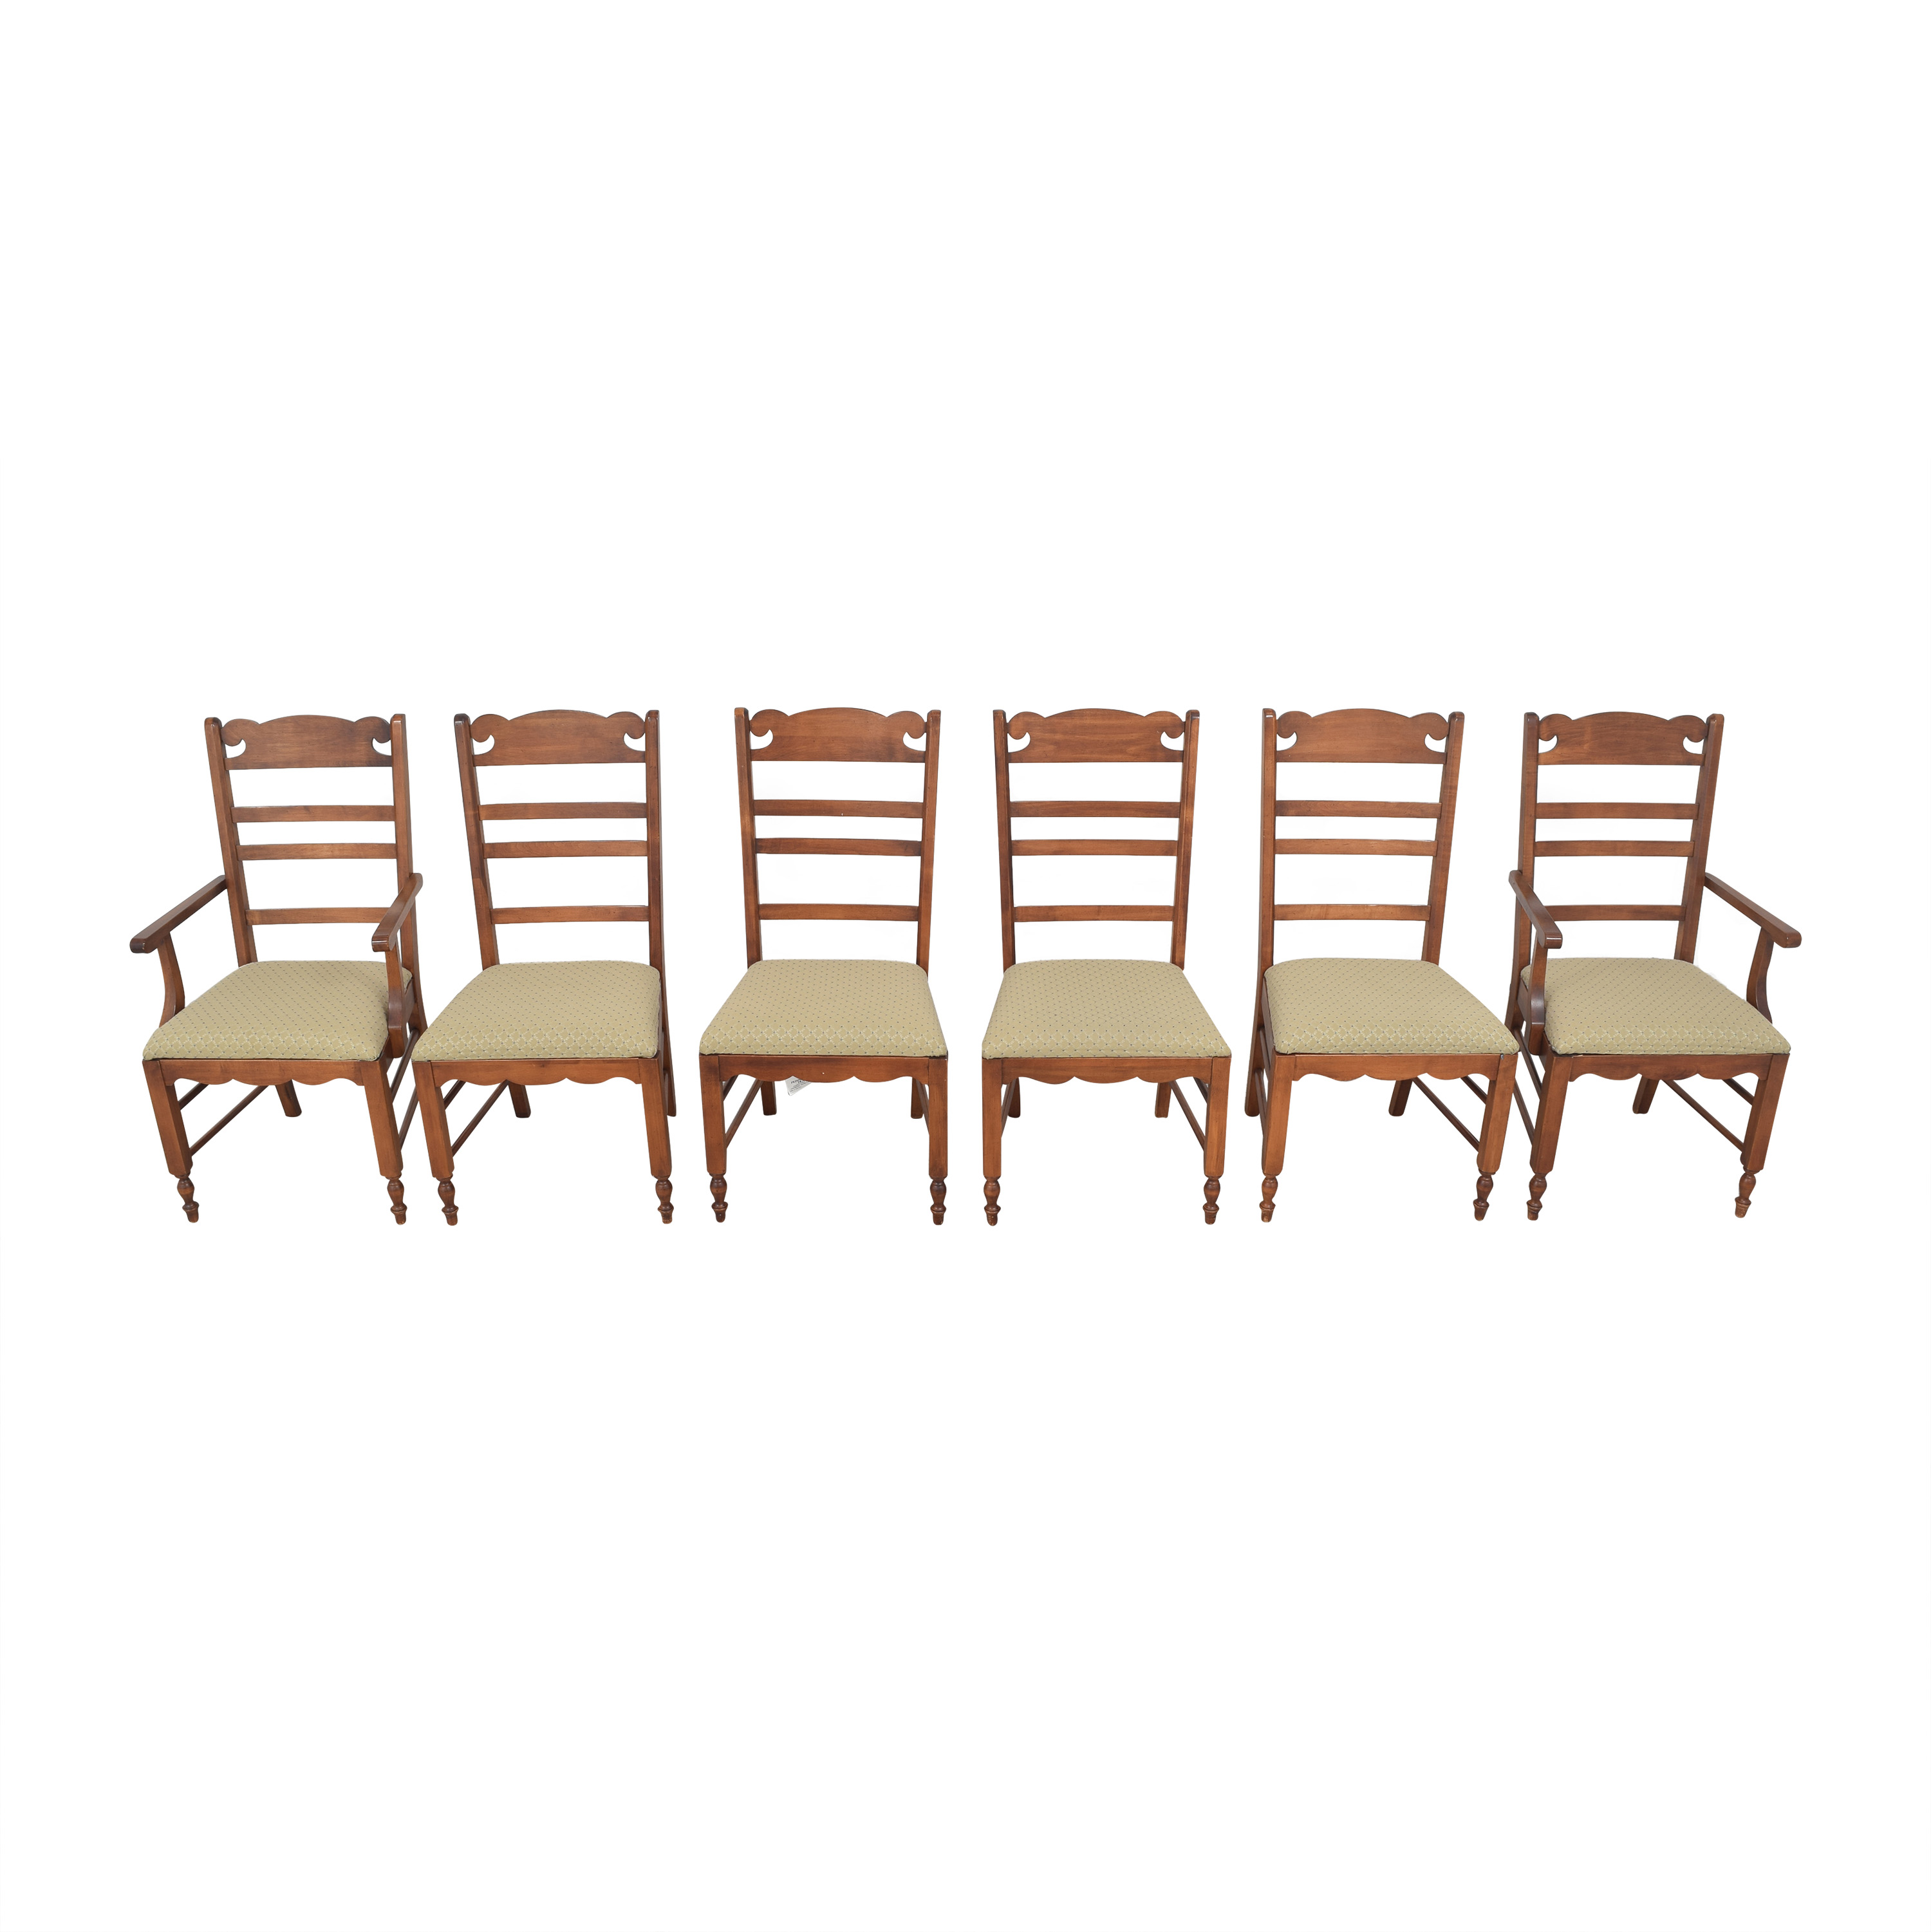 buy Pennsylvania House Pennsylvania House Ladder Back Dining Chairs online